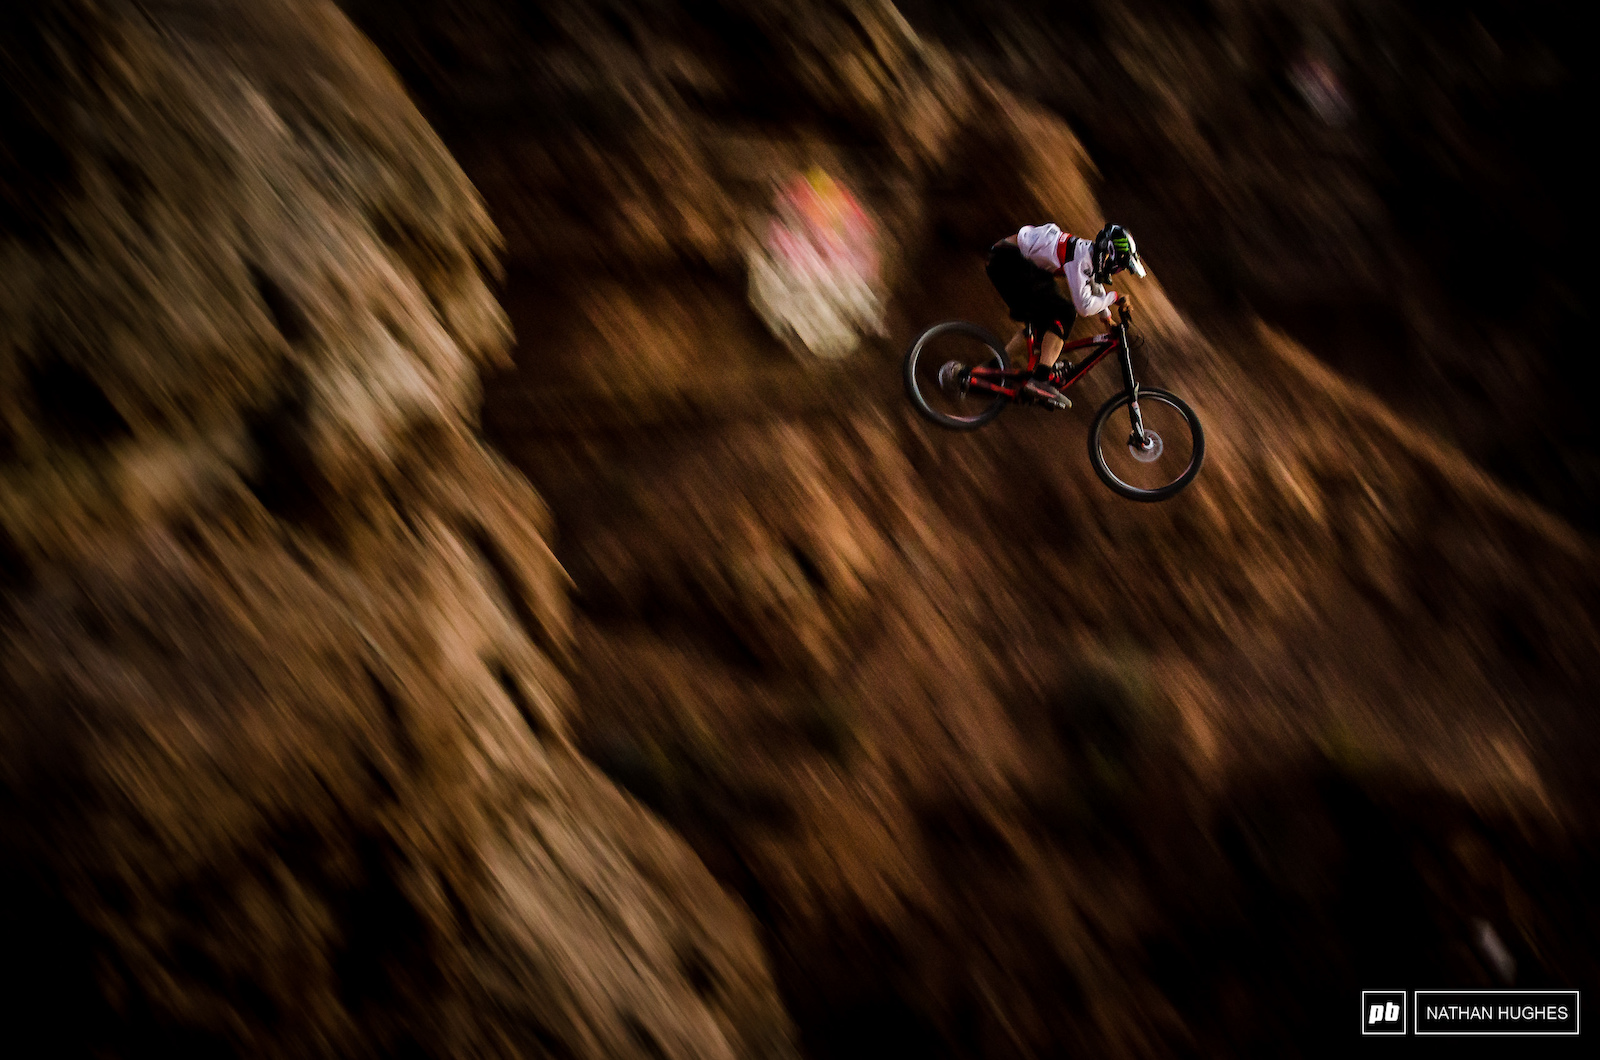 A Cam Zink down-pan shortly before nightfall while guinea-pigging the biggest drop on his line.